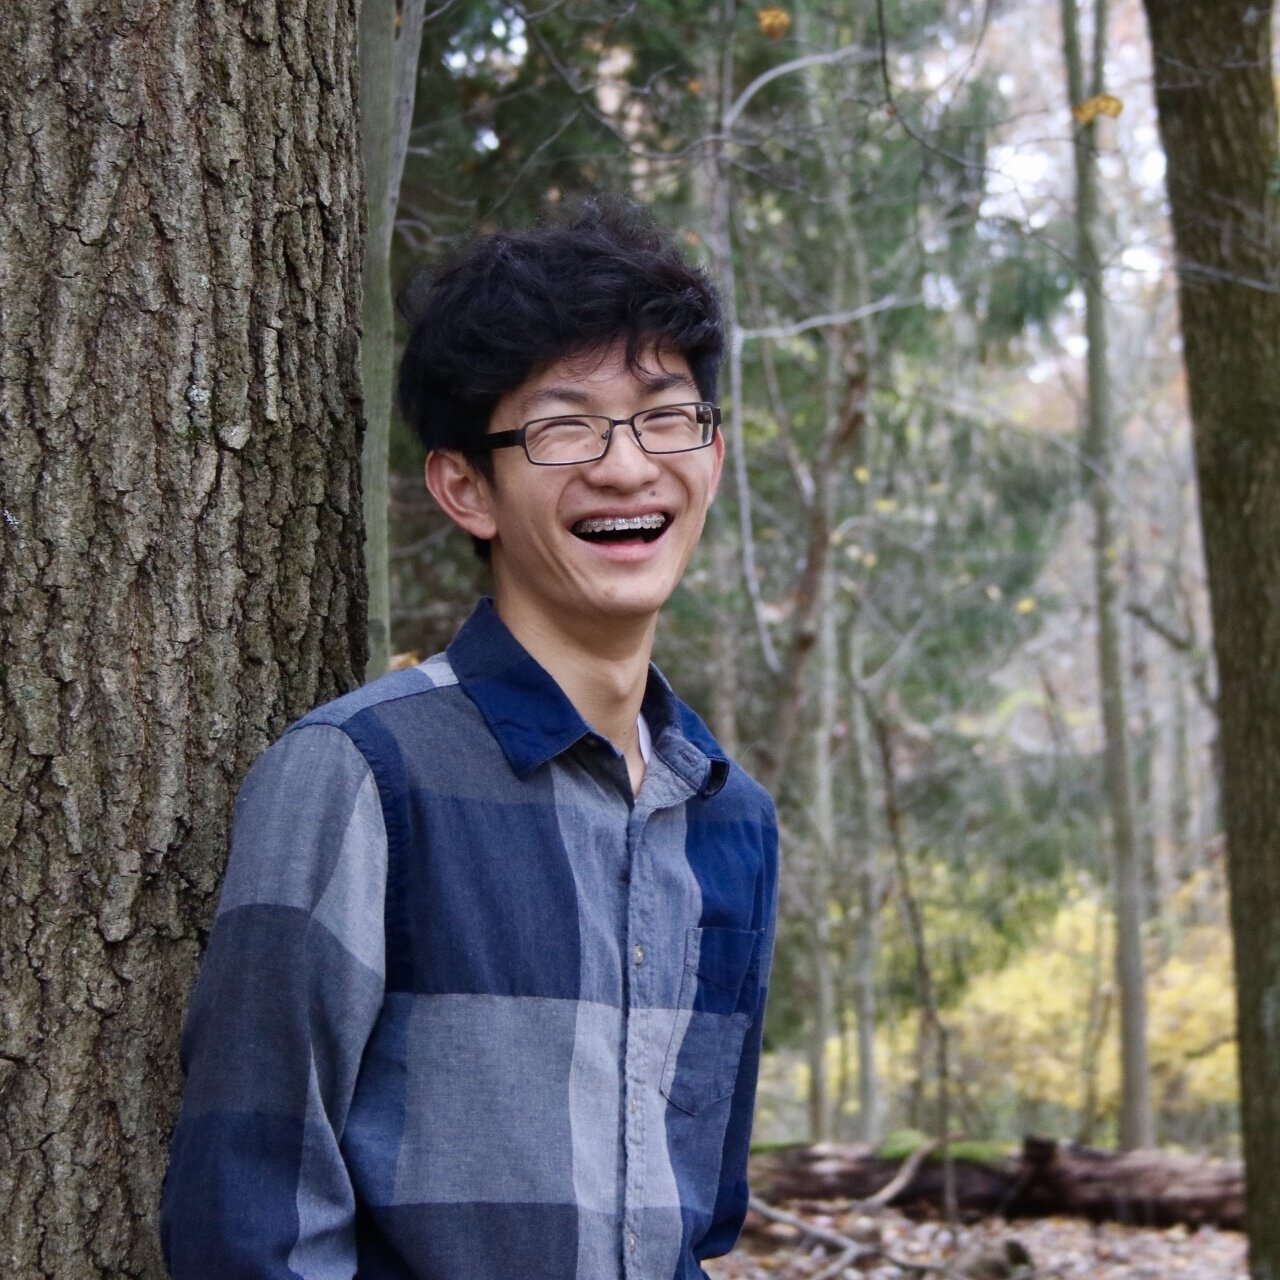 """Peter Fung    Pronouns:  He/Him/His   Academic Year:  Freshman   Major:  Business   Hometown:  USA   Cultural Identity:  Chinese American  """"I think I'm a creative guy. I listen to jazz and metal music. I play ping pong, piano, tennis, chews, and trombone. The classic American chinese kid with the tiger mom"""""""